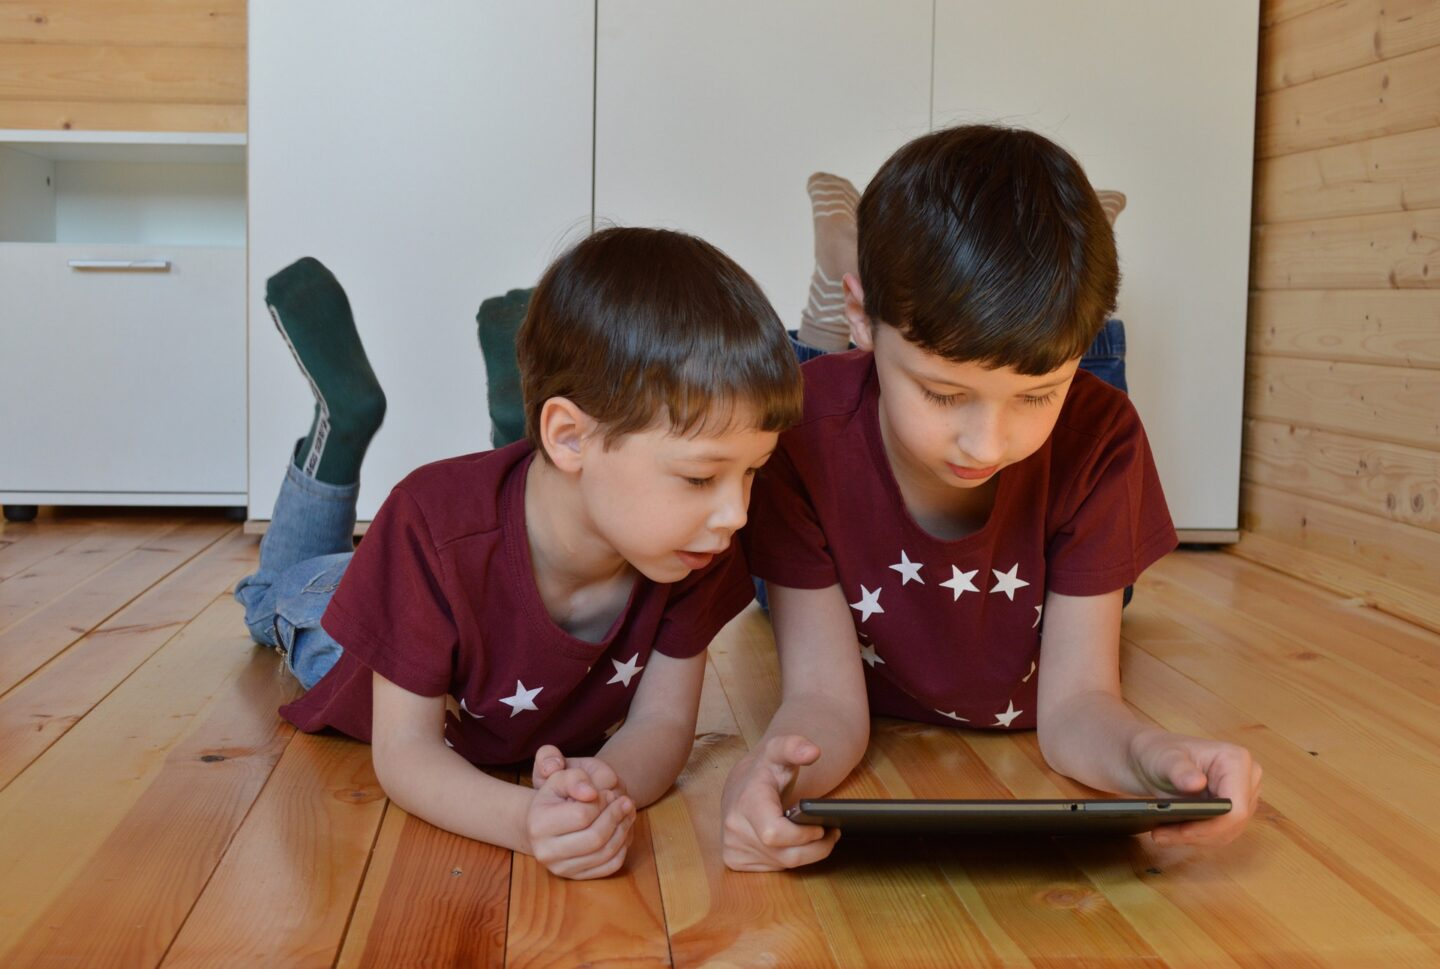 Two kids are lying on the floor and watching a tablet PC